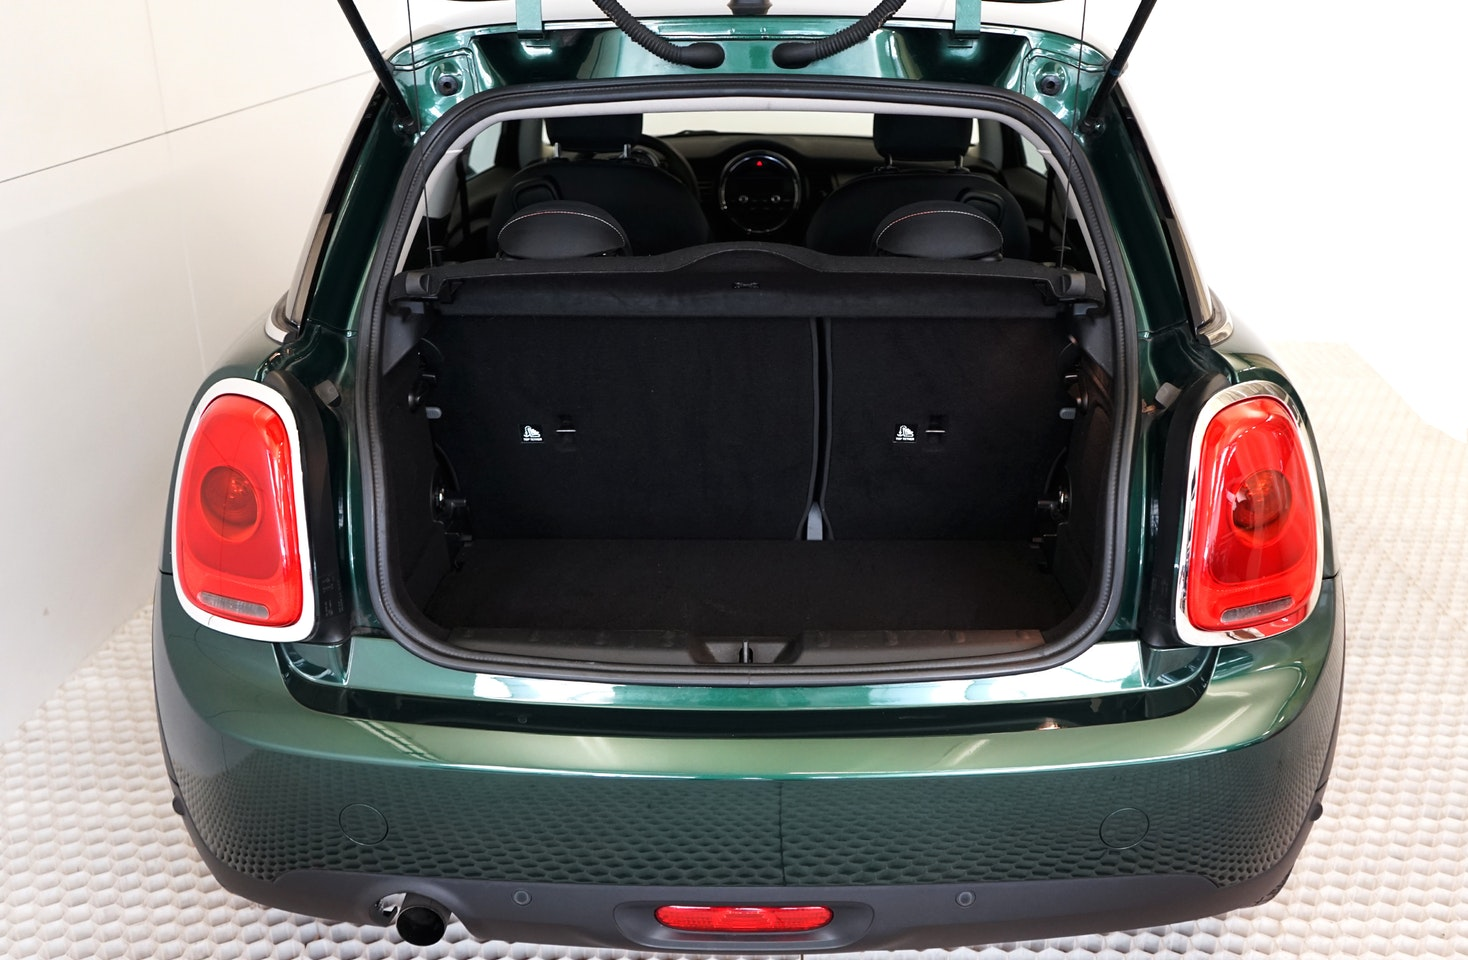 mycar-braine-lalleud-voitures-occasion-mini-cooper-one-first-7